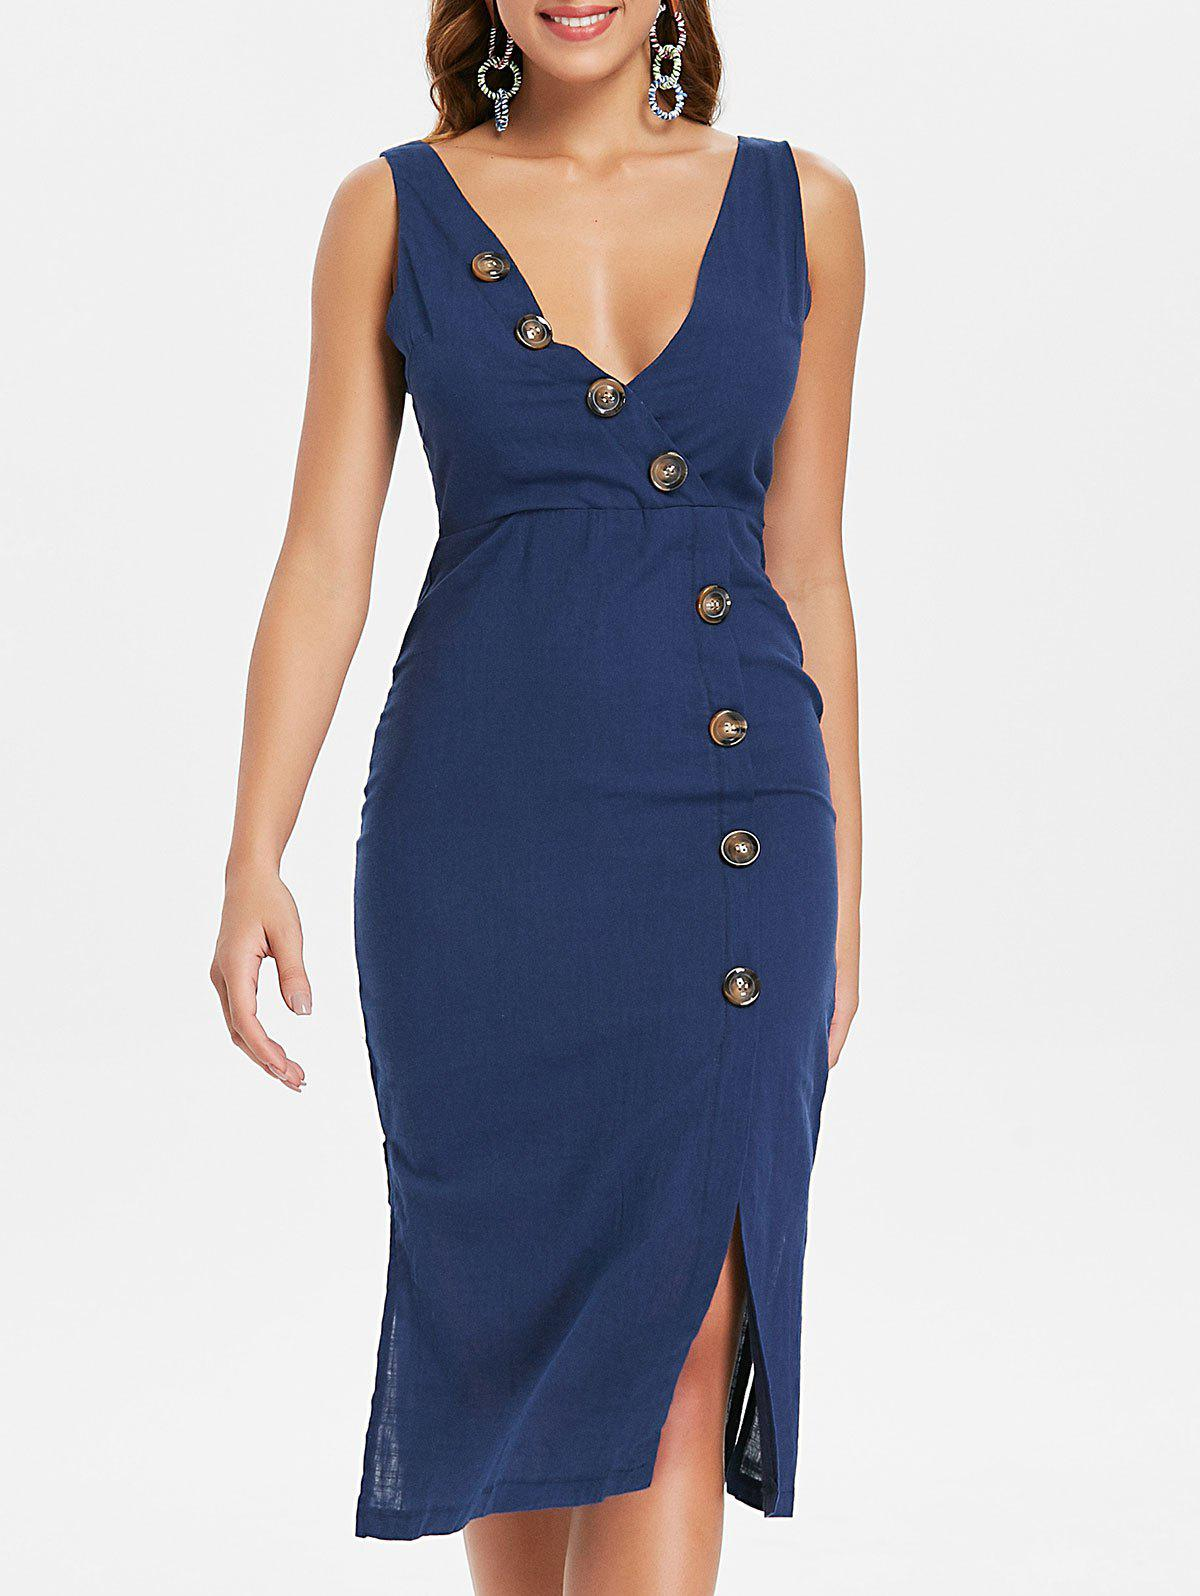 Fancy Button Embellished Plunge Backless Dress